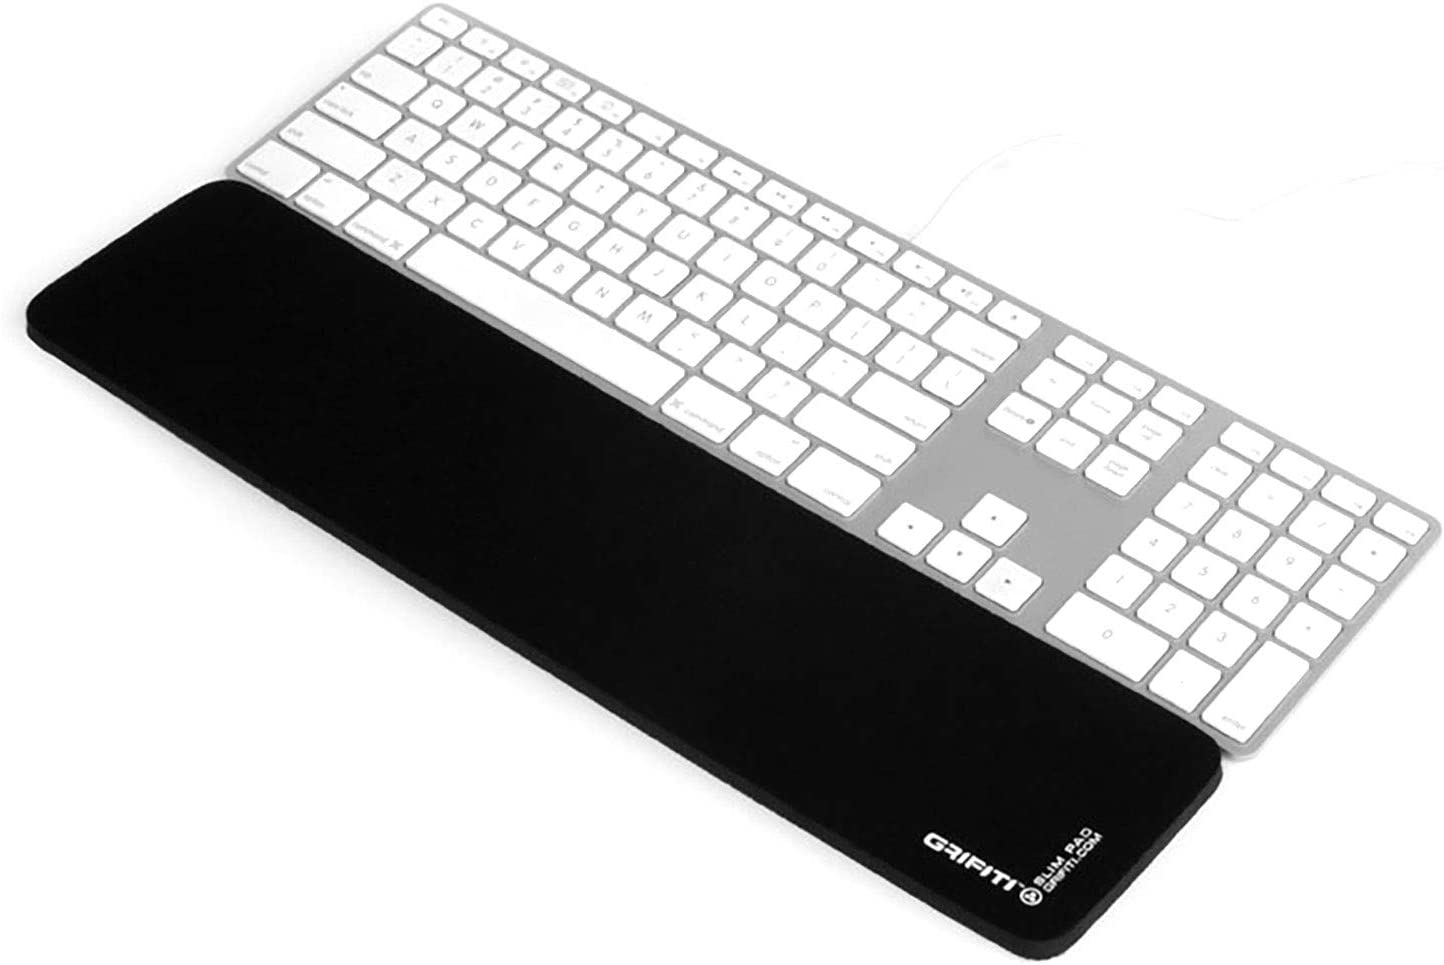 Grifiti Slim Pad 17 Smooth Surface Poron Black Reversible Wrist Rest for Apple® Mac Mini Wireless Keyboard and Magic TrackPad and iMac® Wired USB Keyboard